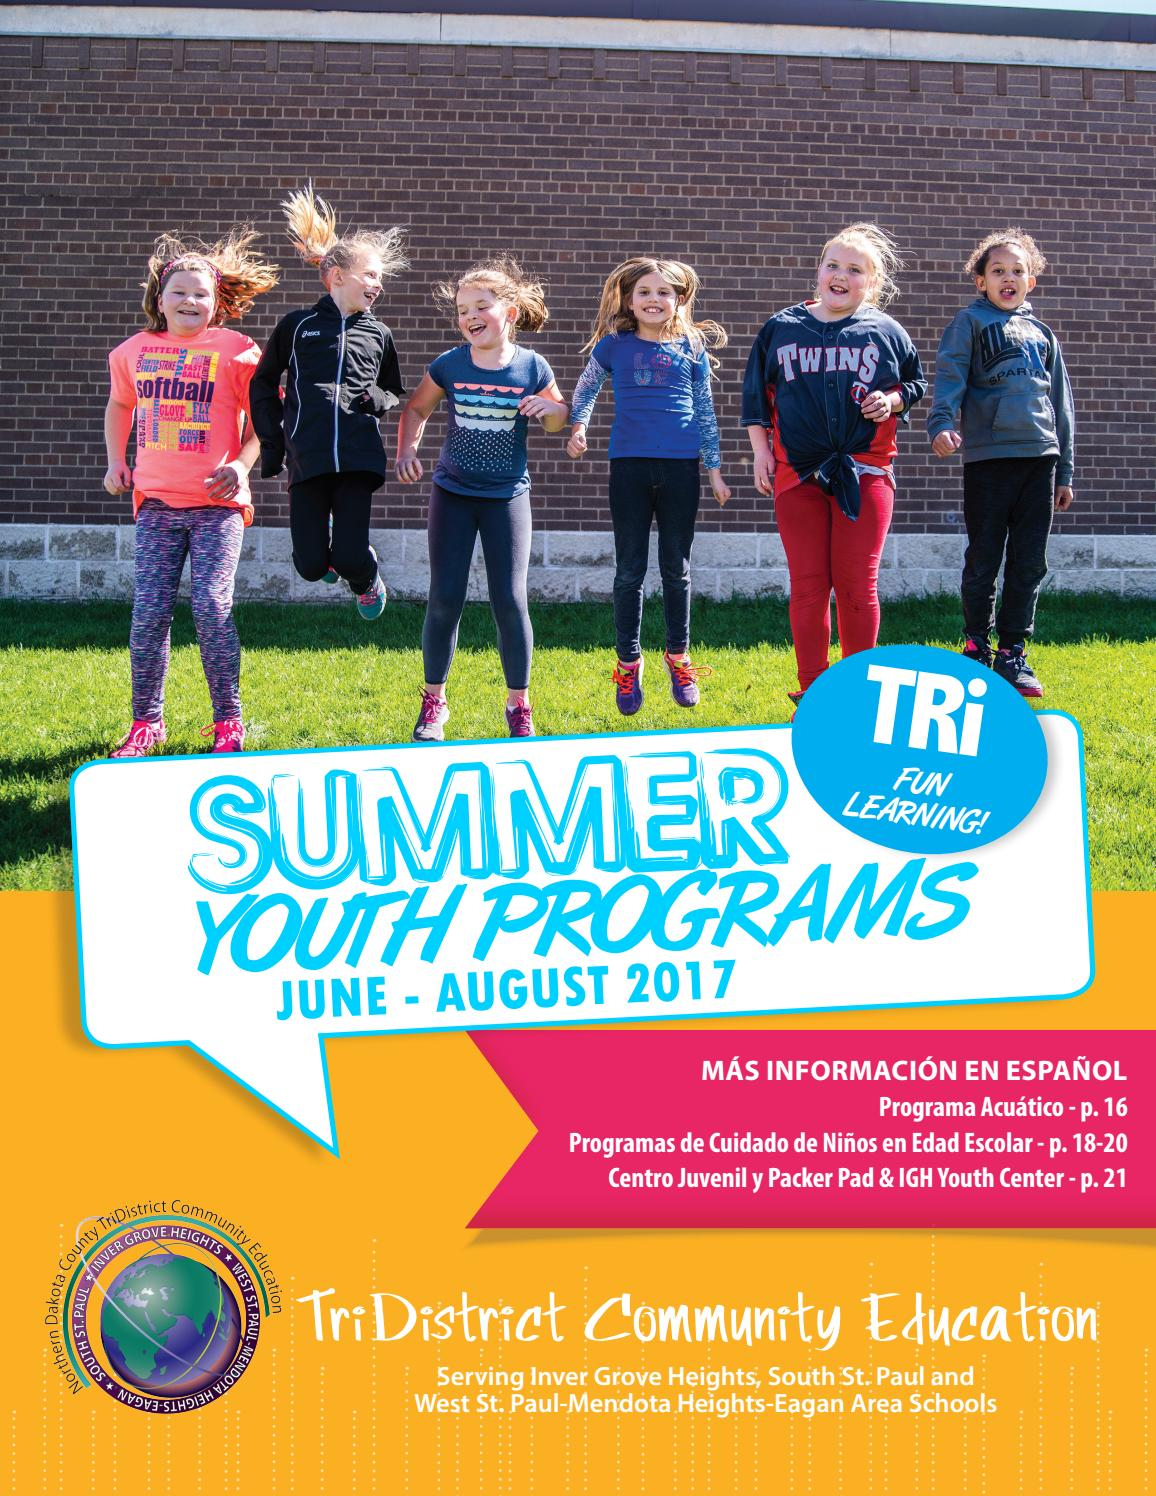 2017 Youth Summer Catalog by TriDistrict Community Education - issuu